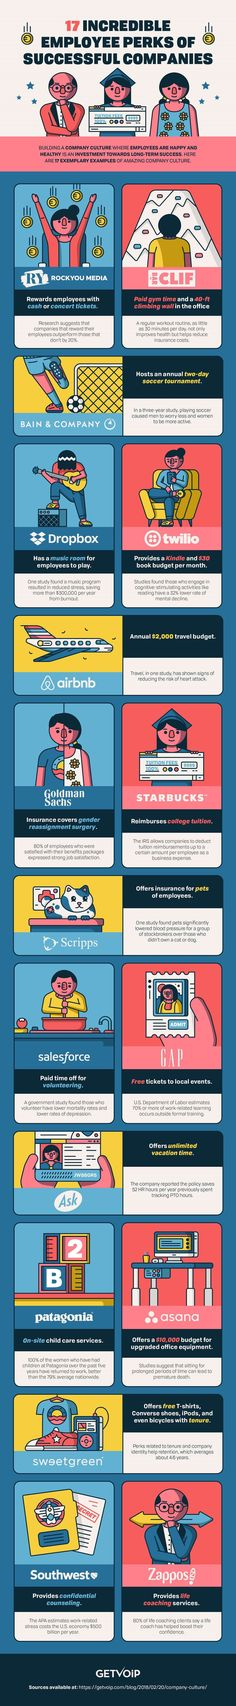 17 Incredible Employee Perks of Successful Companies #Infographic #Business #EmployeeBenefits